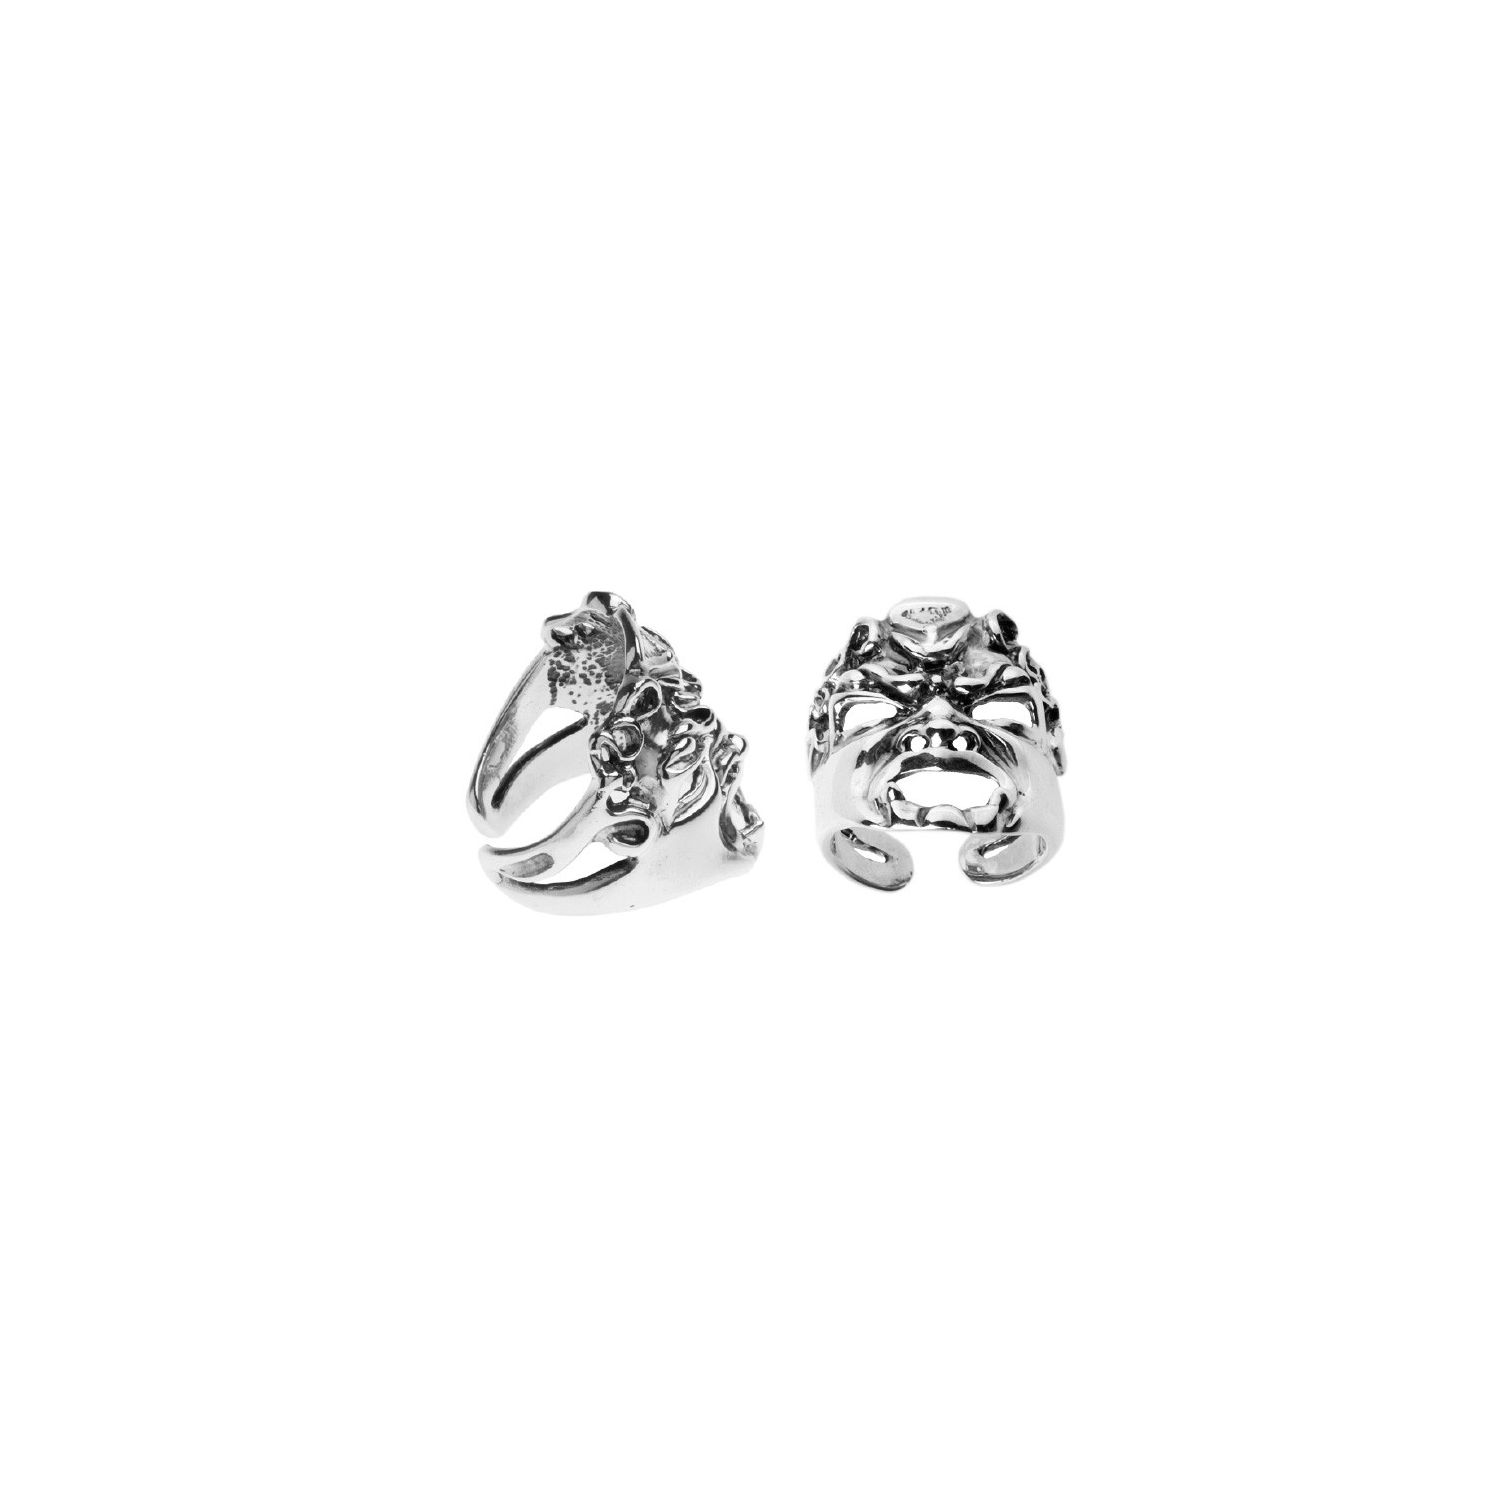 Silver Ring with Mask (27577)